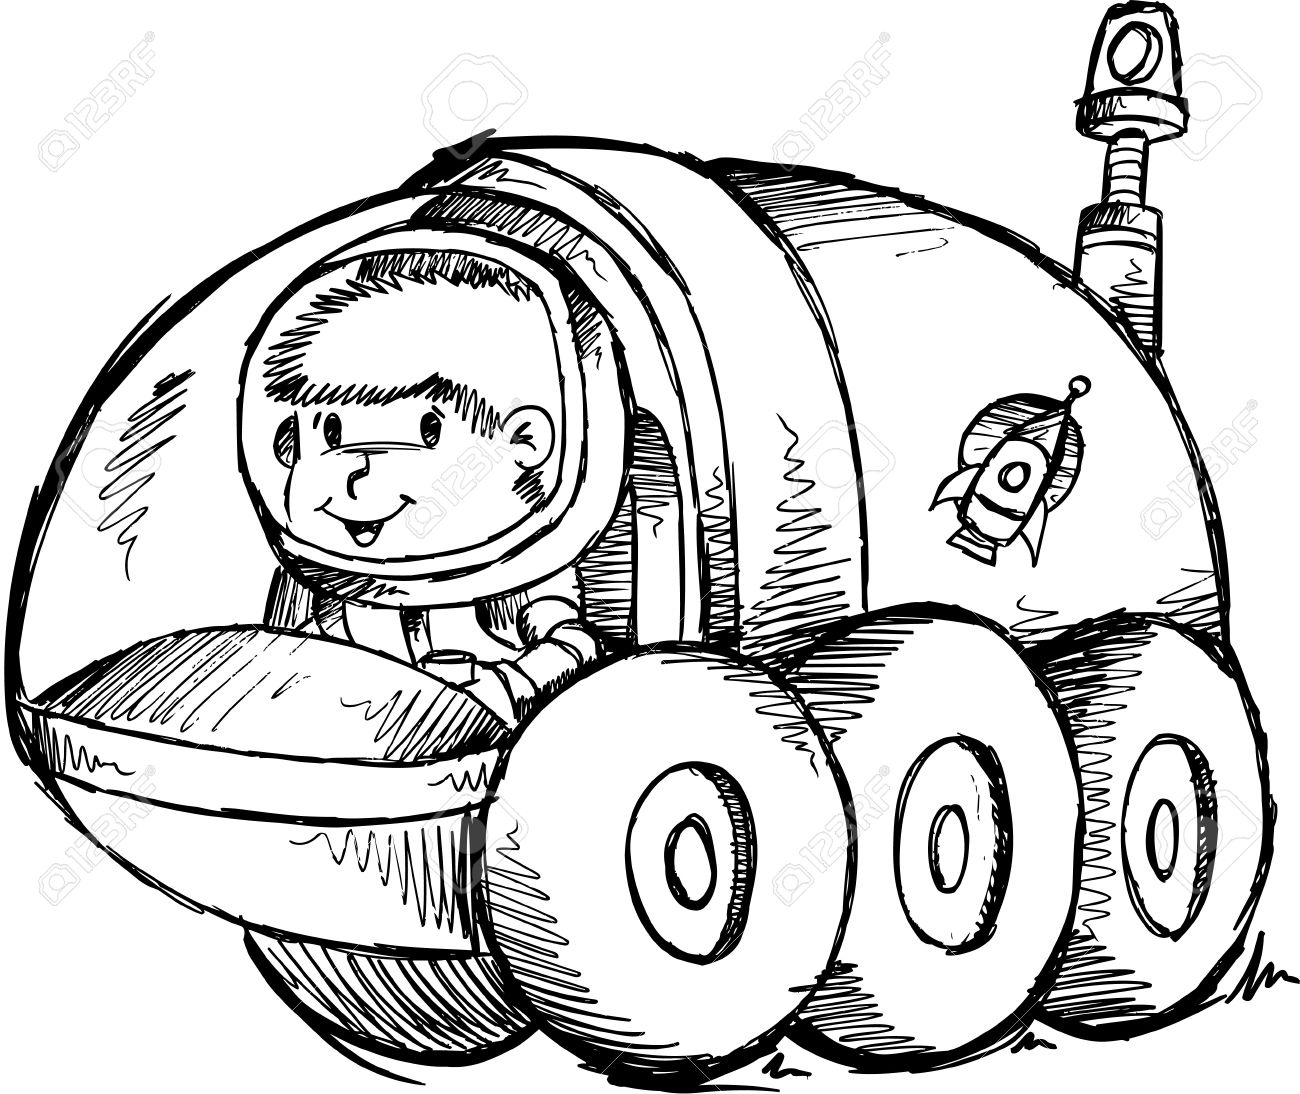 Moonbuggy Clipart